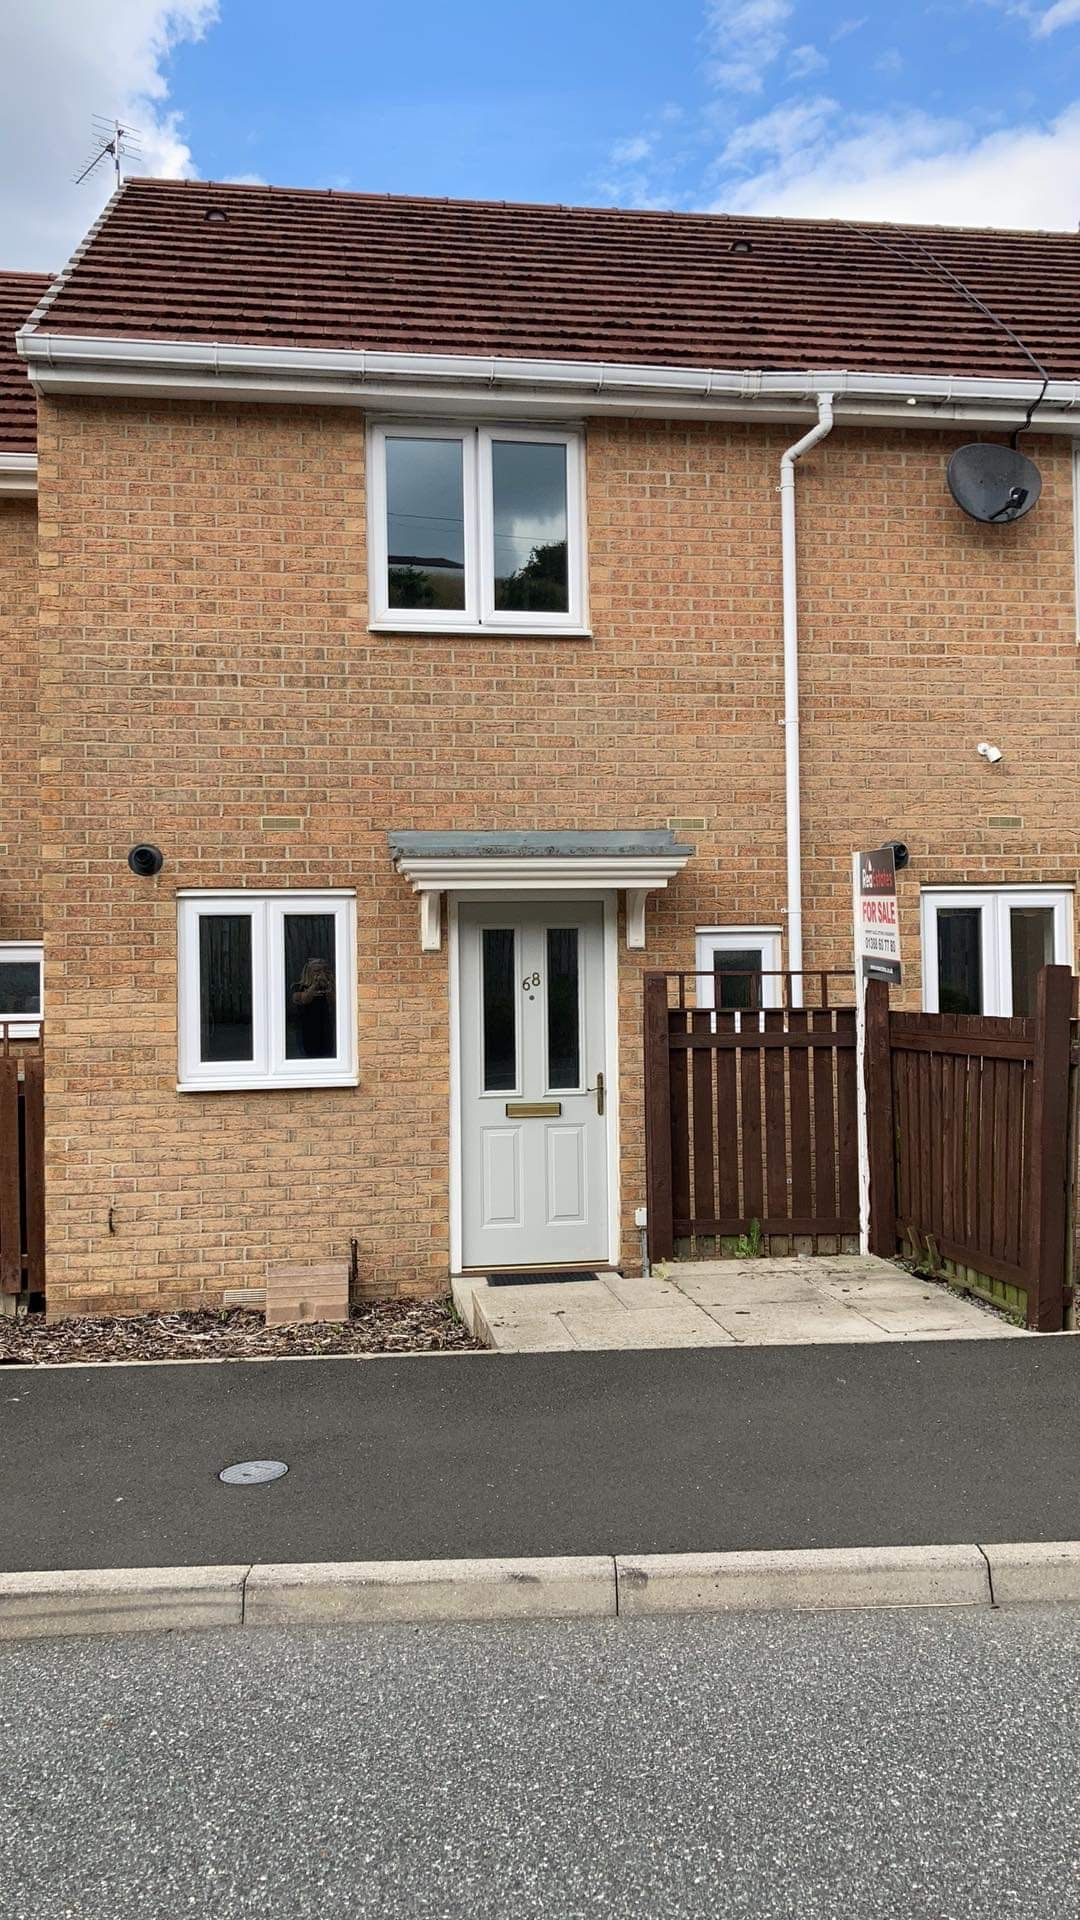 2 bedroom mid terraced house Sale Agreed in Langley Park - Photograph 1.